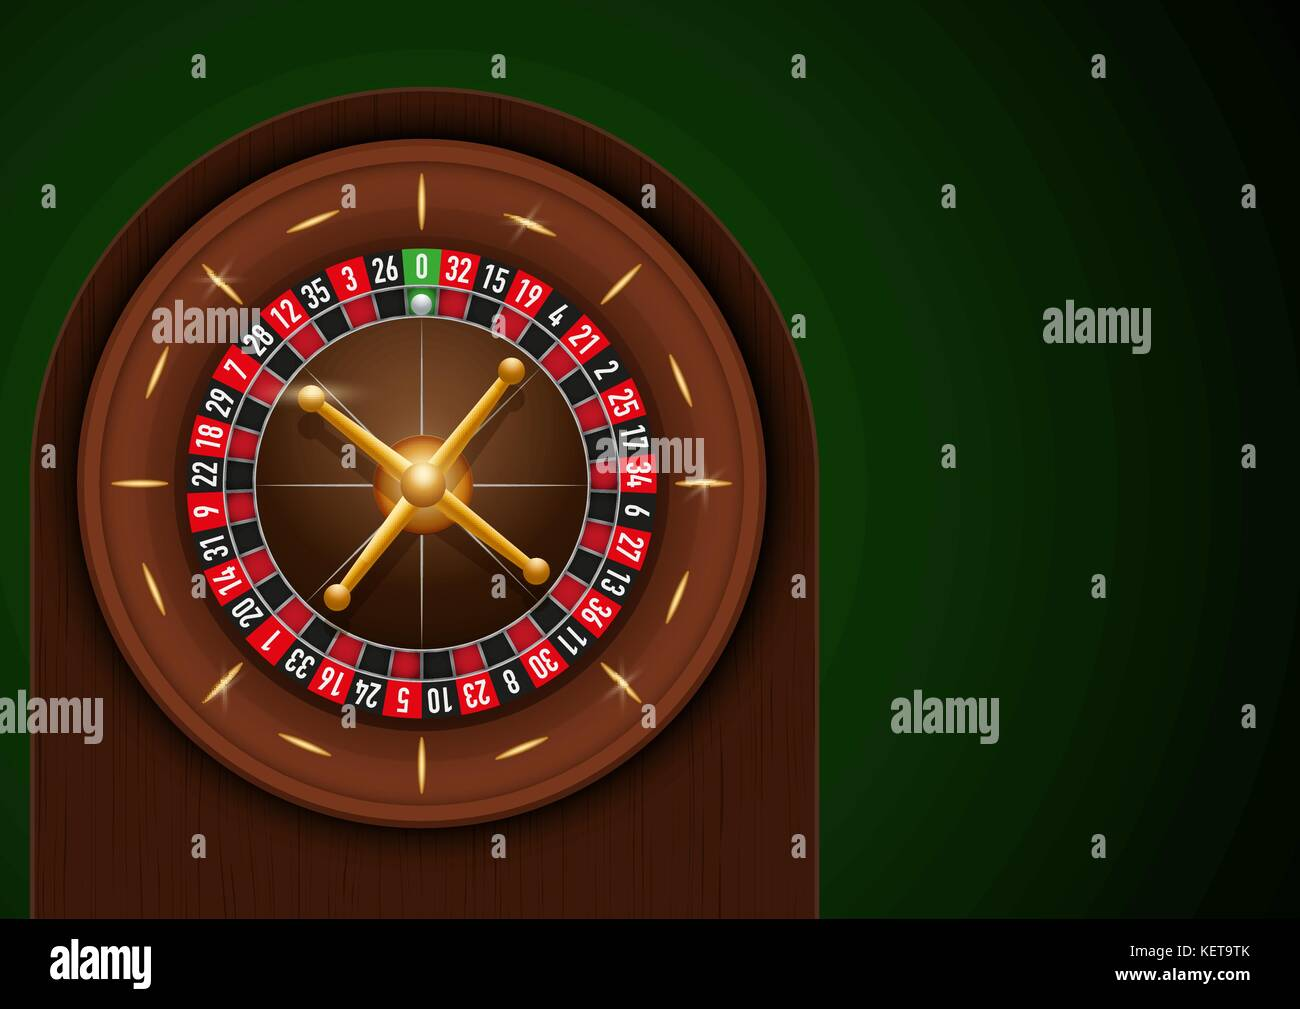 Traditional european roulette table vector illustration stock vector - Casino Roulette On Green Cloth Stock Image